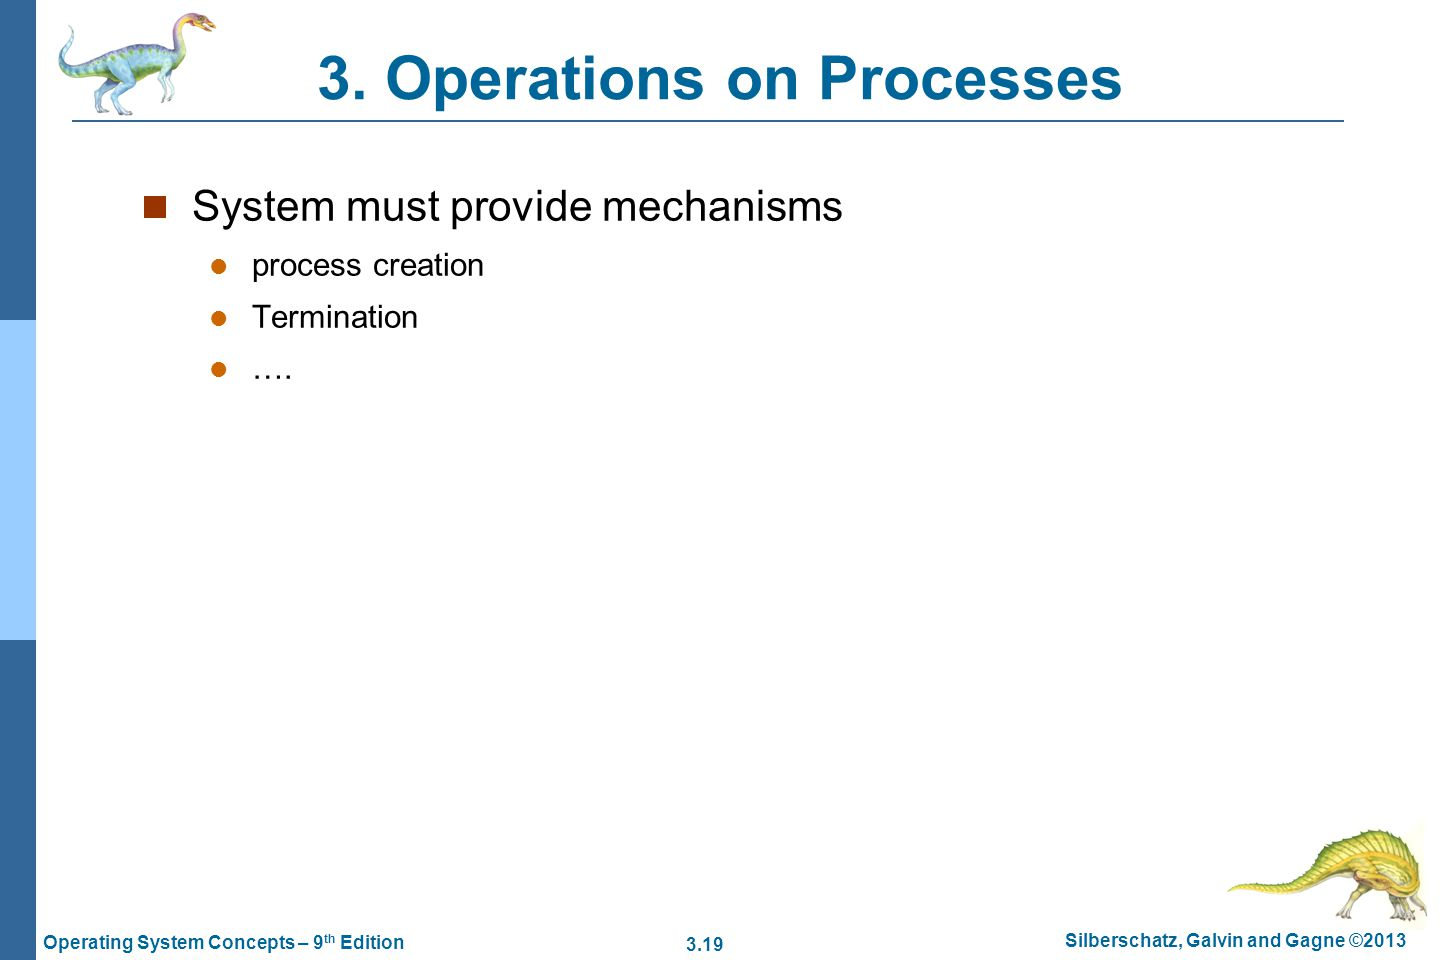 3.19 Silberschatz, Galvin and Gagne ©2013 Operating System Concepts – 9 th Edition 3. Operations on Processes System must provide mechanisms process c